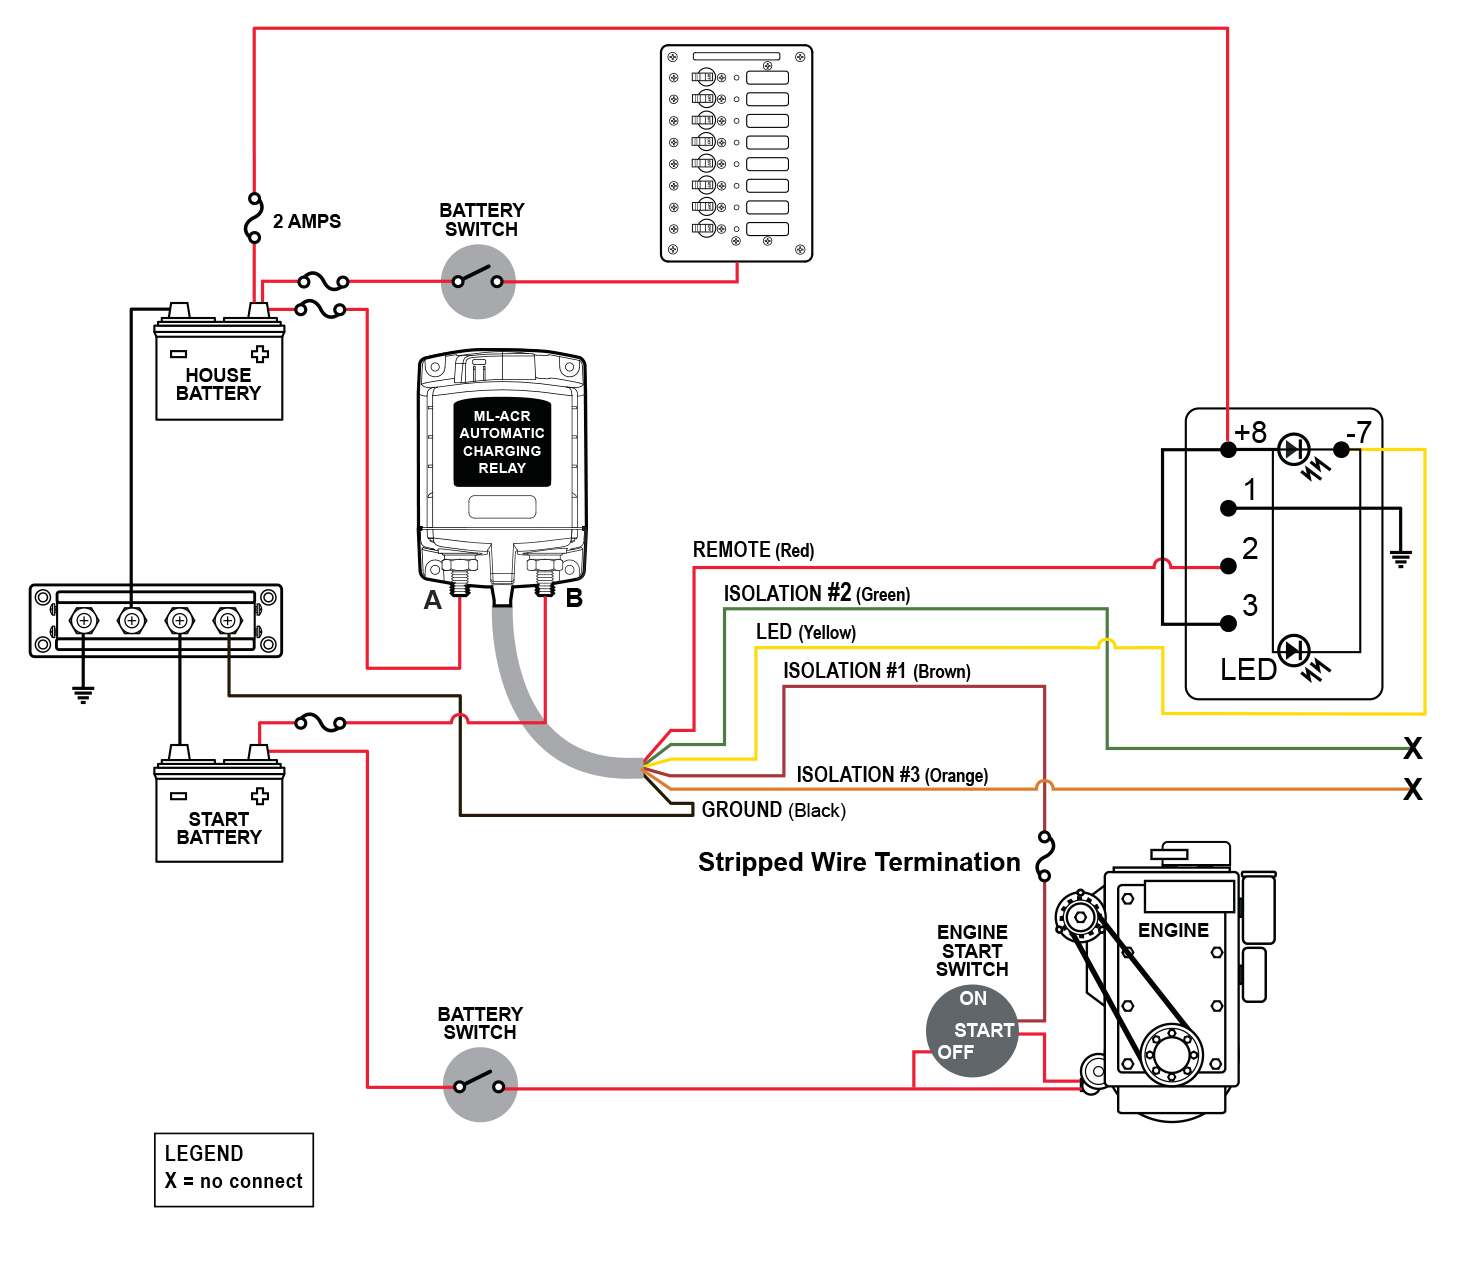 78004 WireDiagram blue sea systems wiring diagram blue sea systems add a battery  at nearapp.co